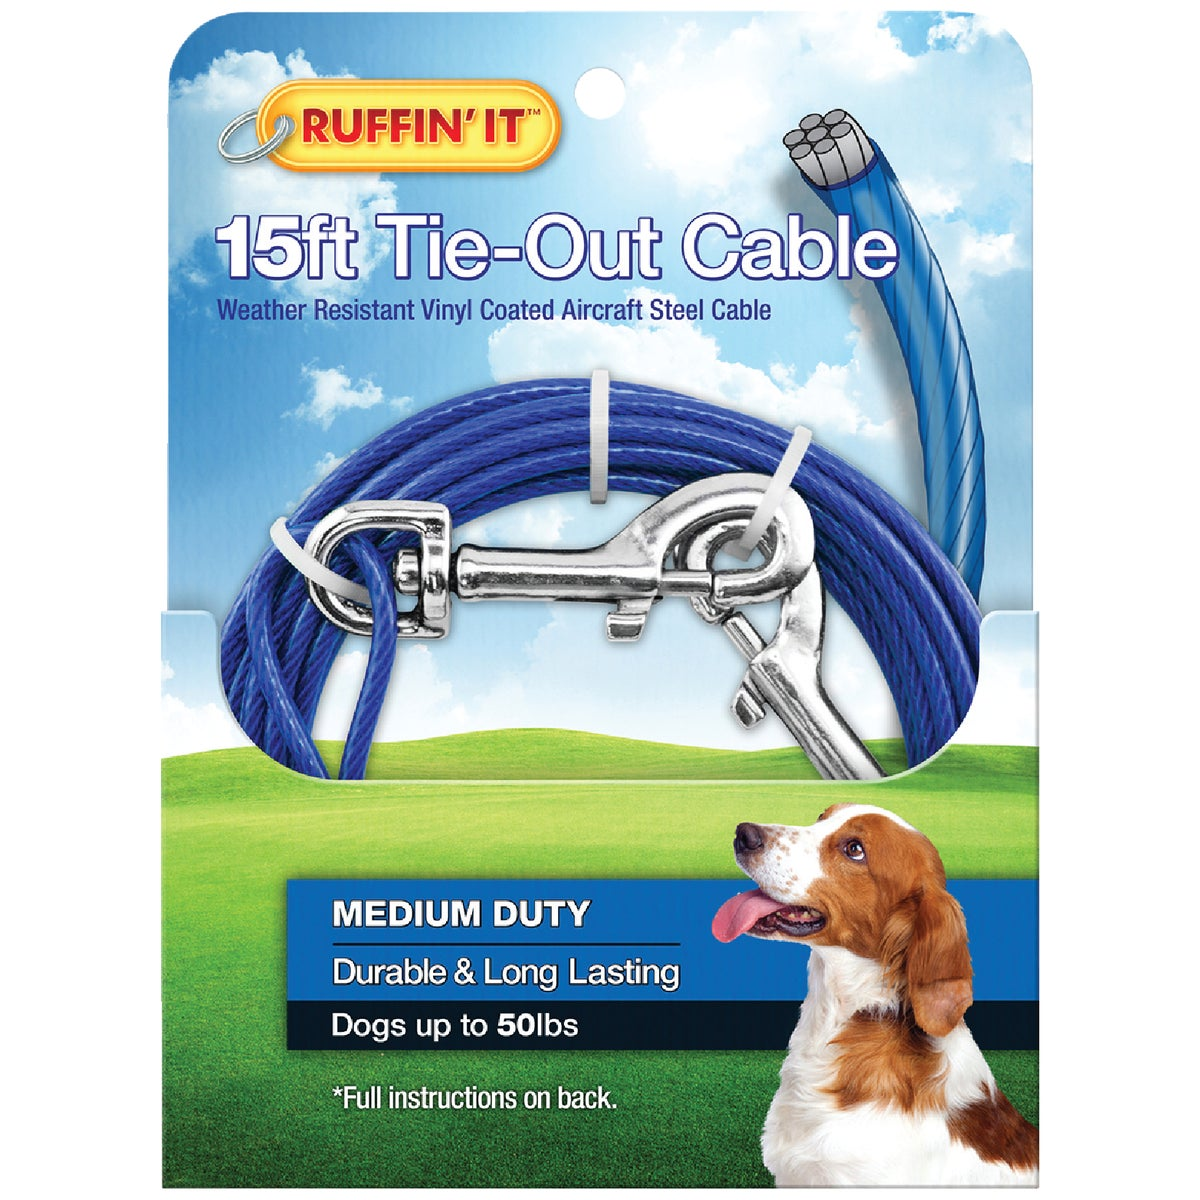 15' TIE-OUT CABLE - 29115 by Westminster Pet